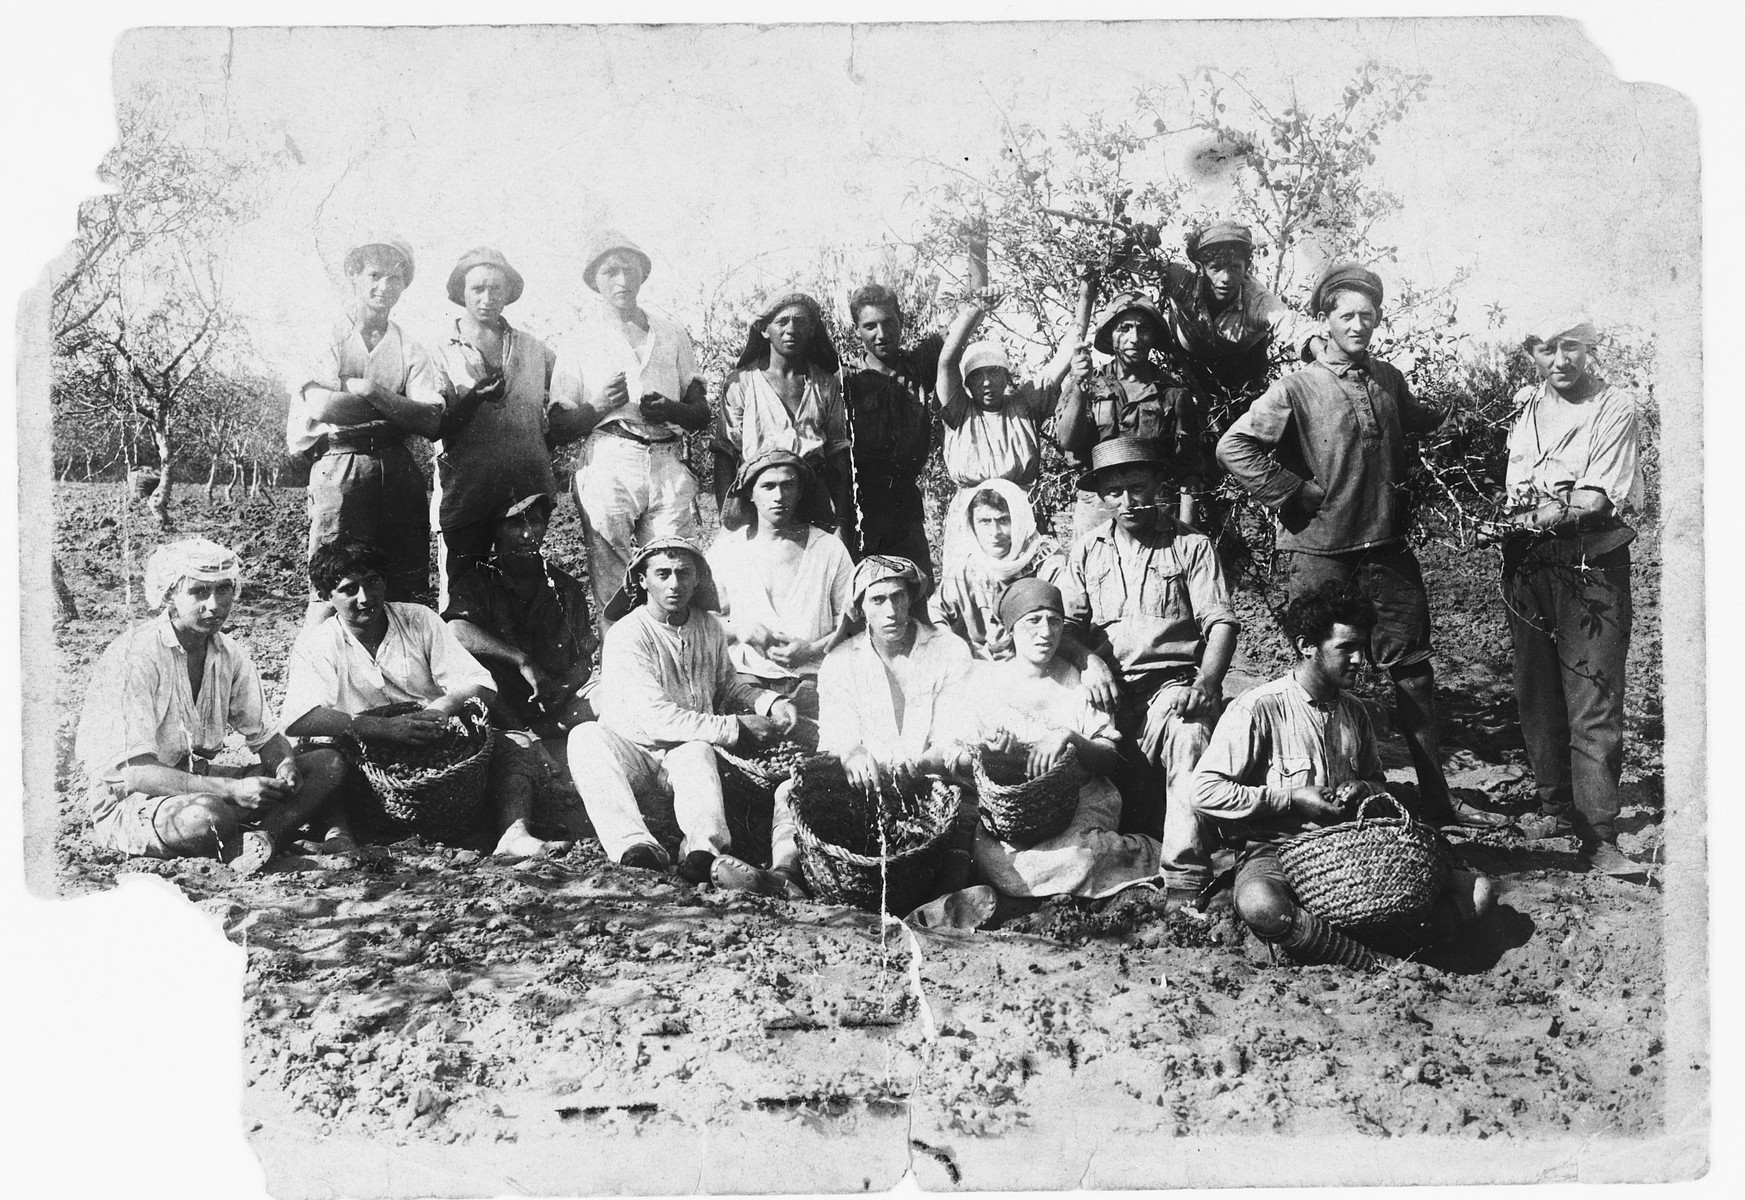 Group portrait of young Zionist pioneers in Palestine in a field with straw baskets.  Among those pictured is Mendel Abramowicz.